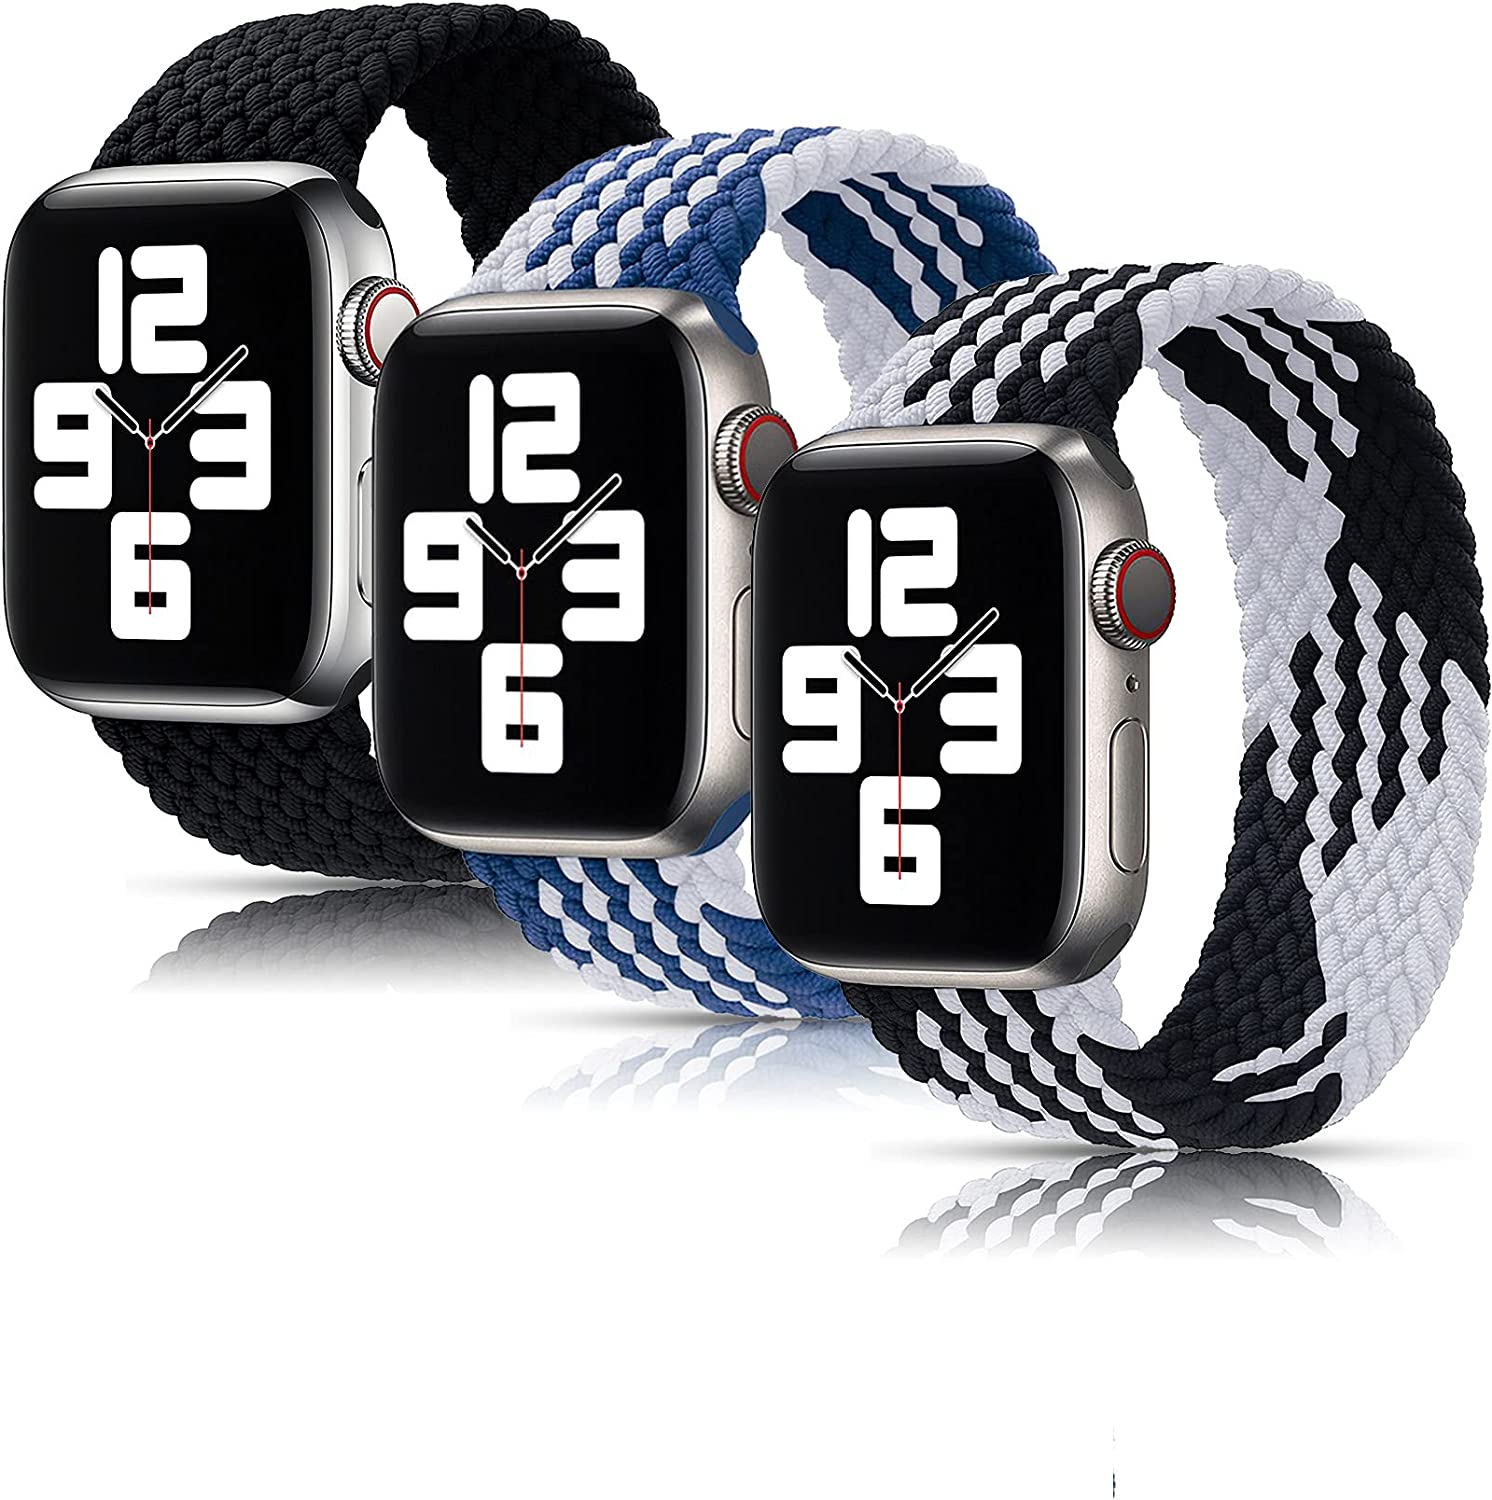 Girovo 3 Packs Solo Loop Strap Compatible with Braided Sport Apple Watch Band 42mm 44mm, Soft Stretchy Braided Wristband for iWatch Series 1/2/3/4/5/6/SE, Charcoal/Black White/Blue White, L